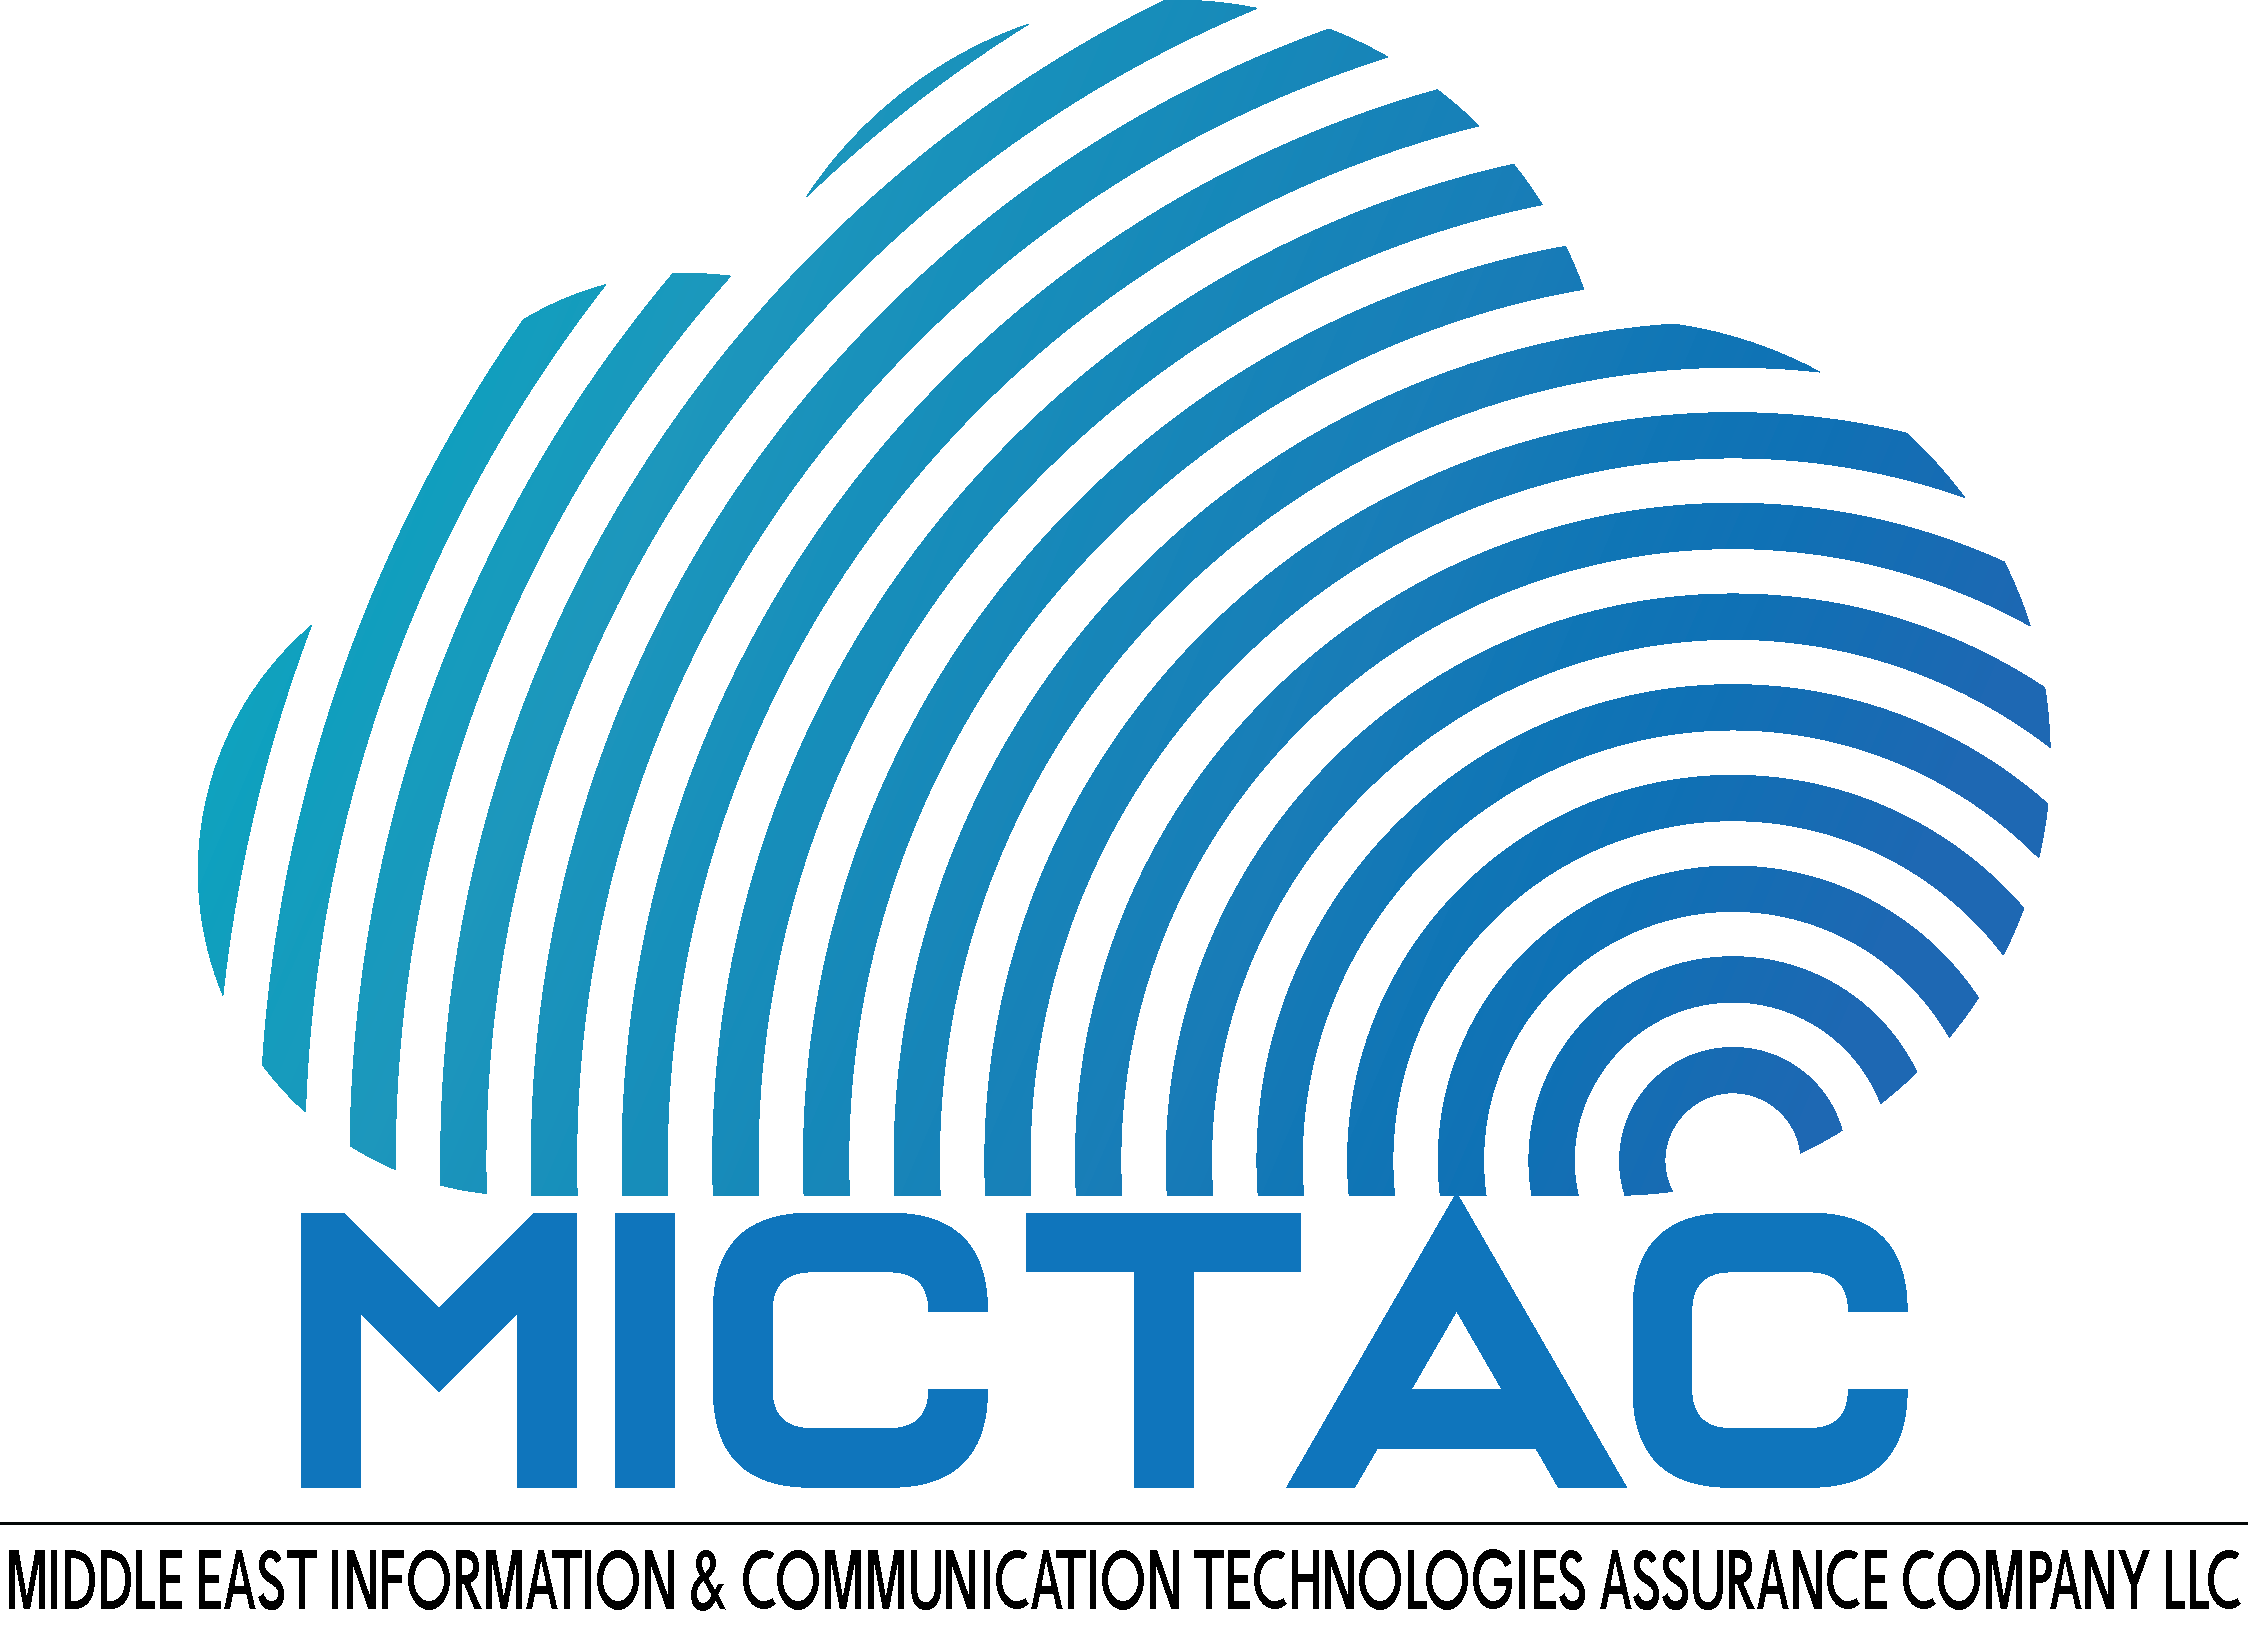 MICTAC | Middle East Information & Communication Technology Assurance Co.